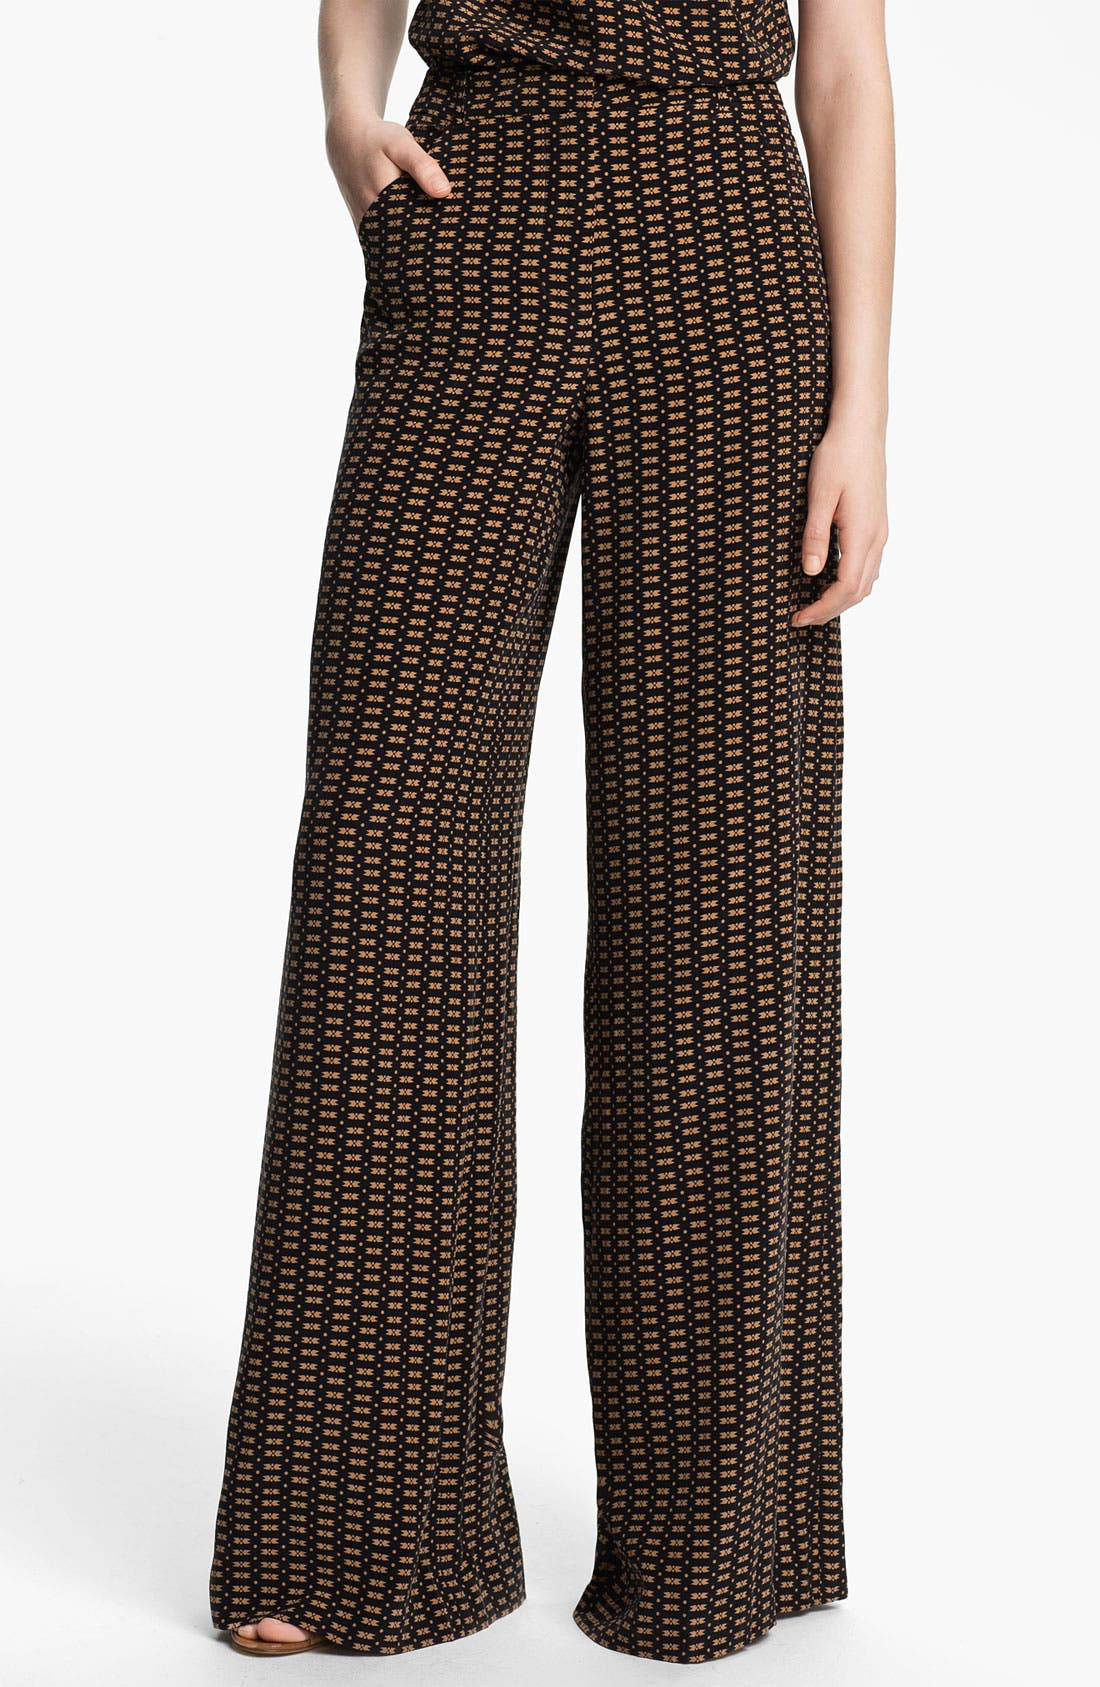 Alternate Image 1 Selected - Tracy Reese 'Motif Stripe' Palazzo Pants